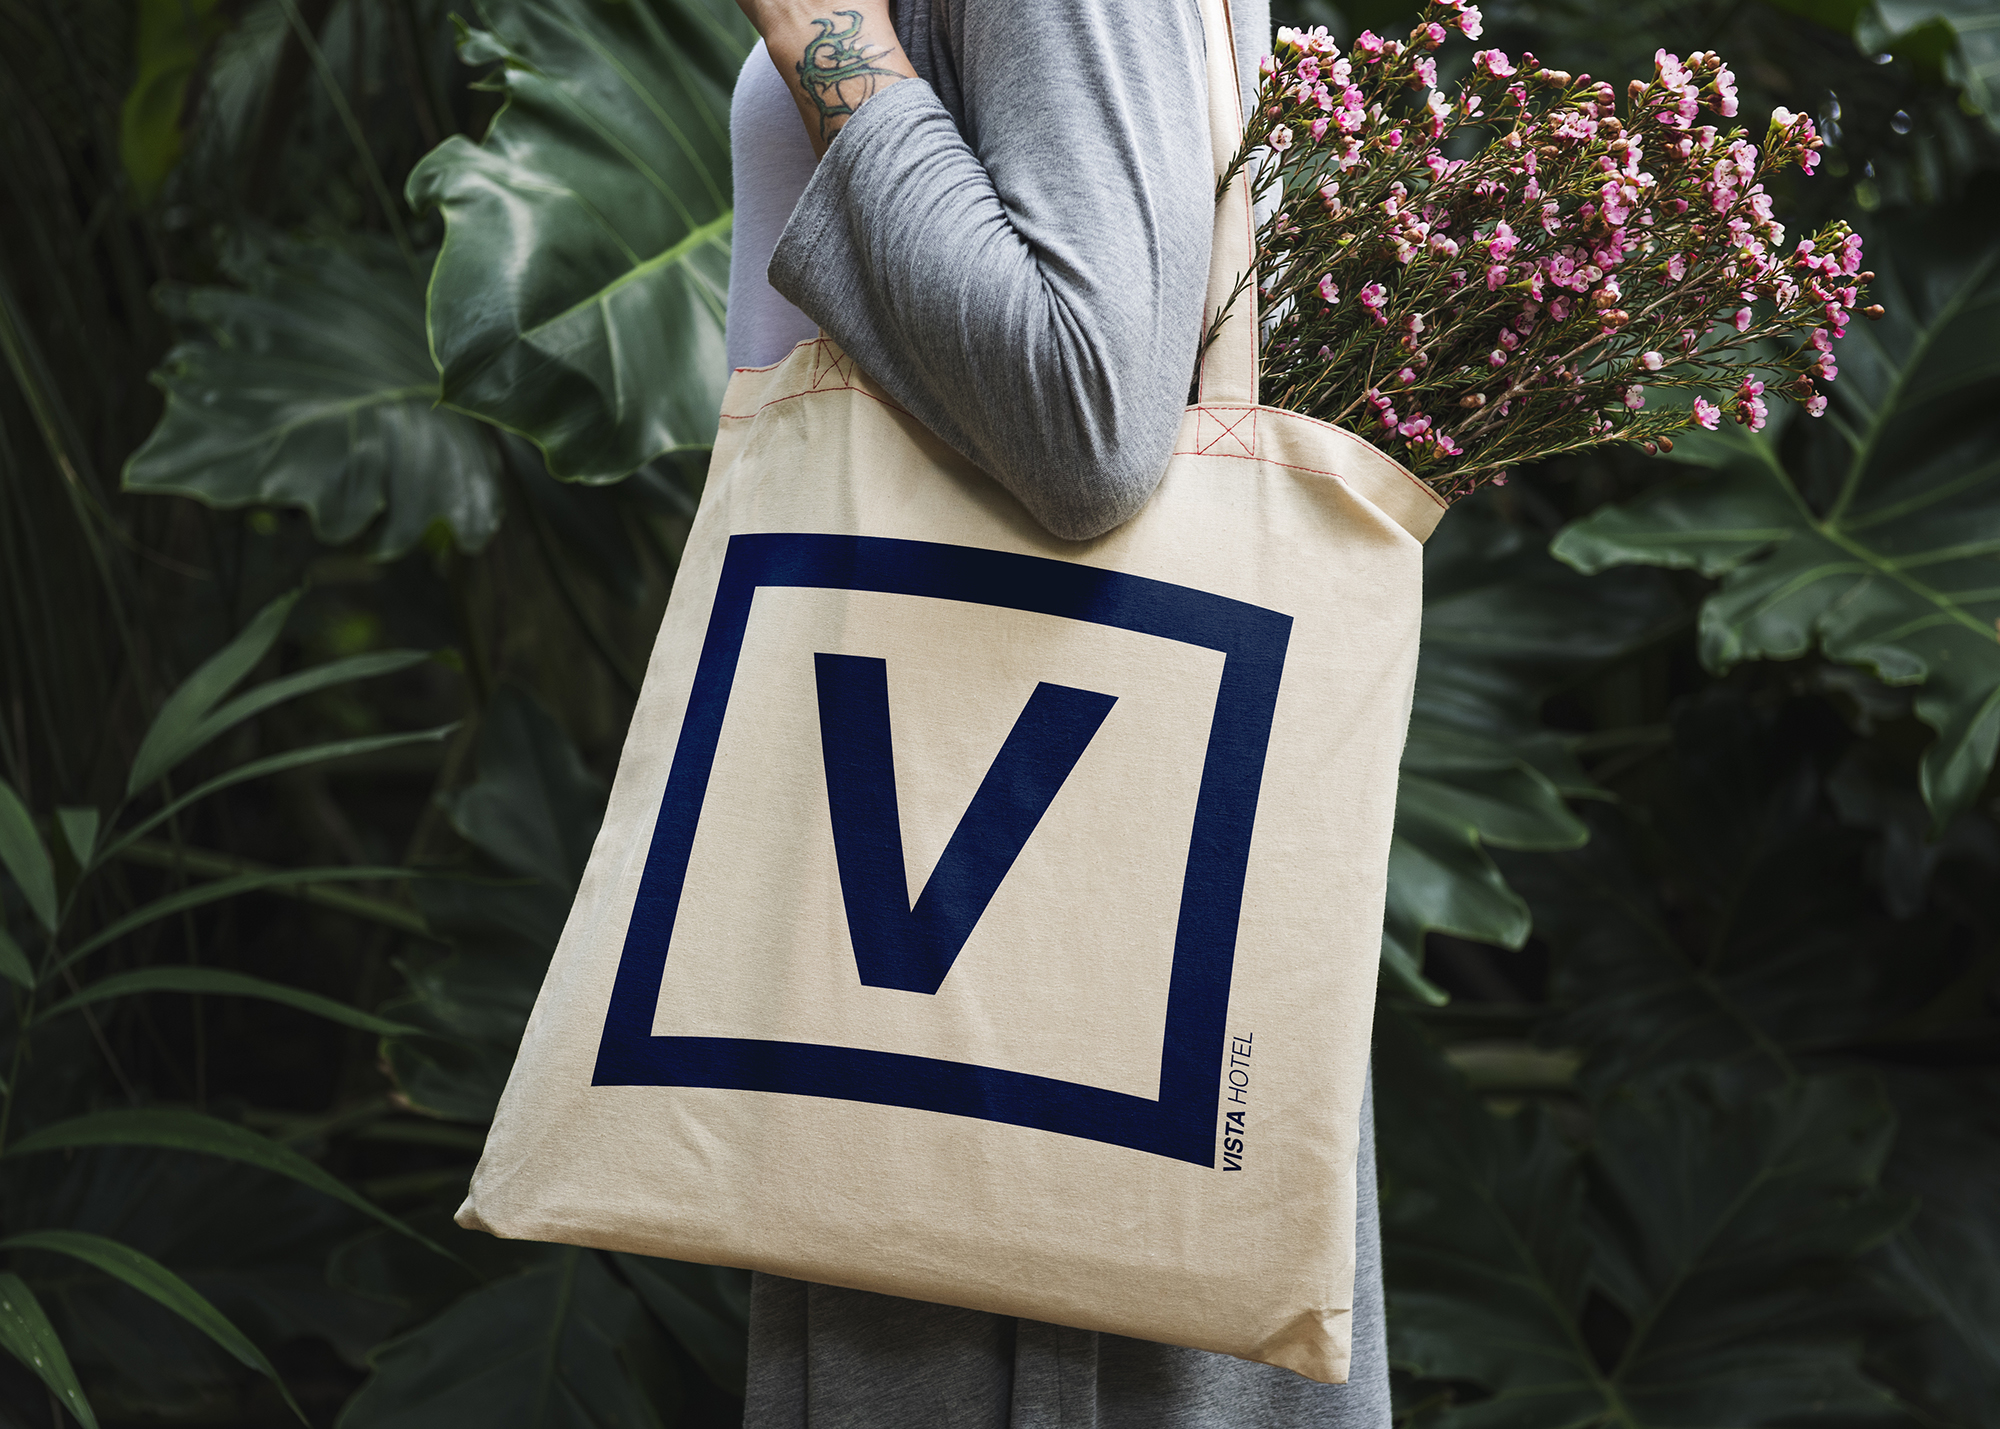 Vista Hotel Tote Bag and collaterla